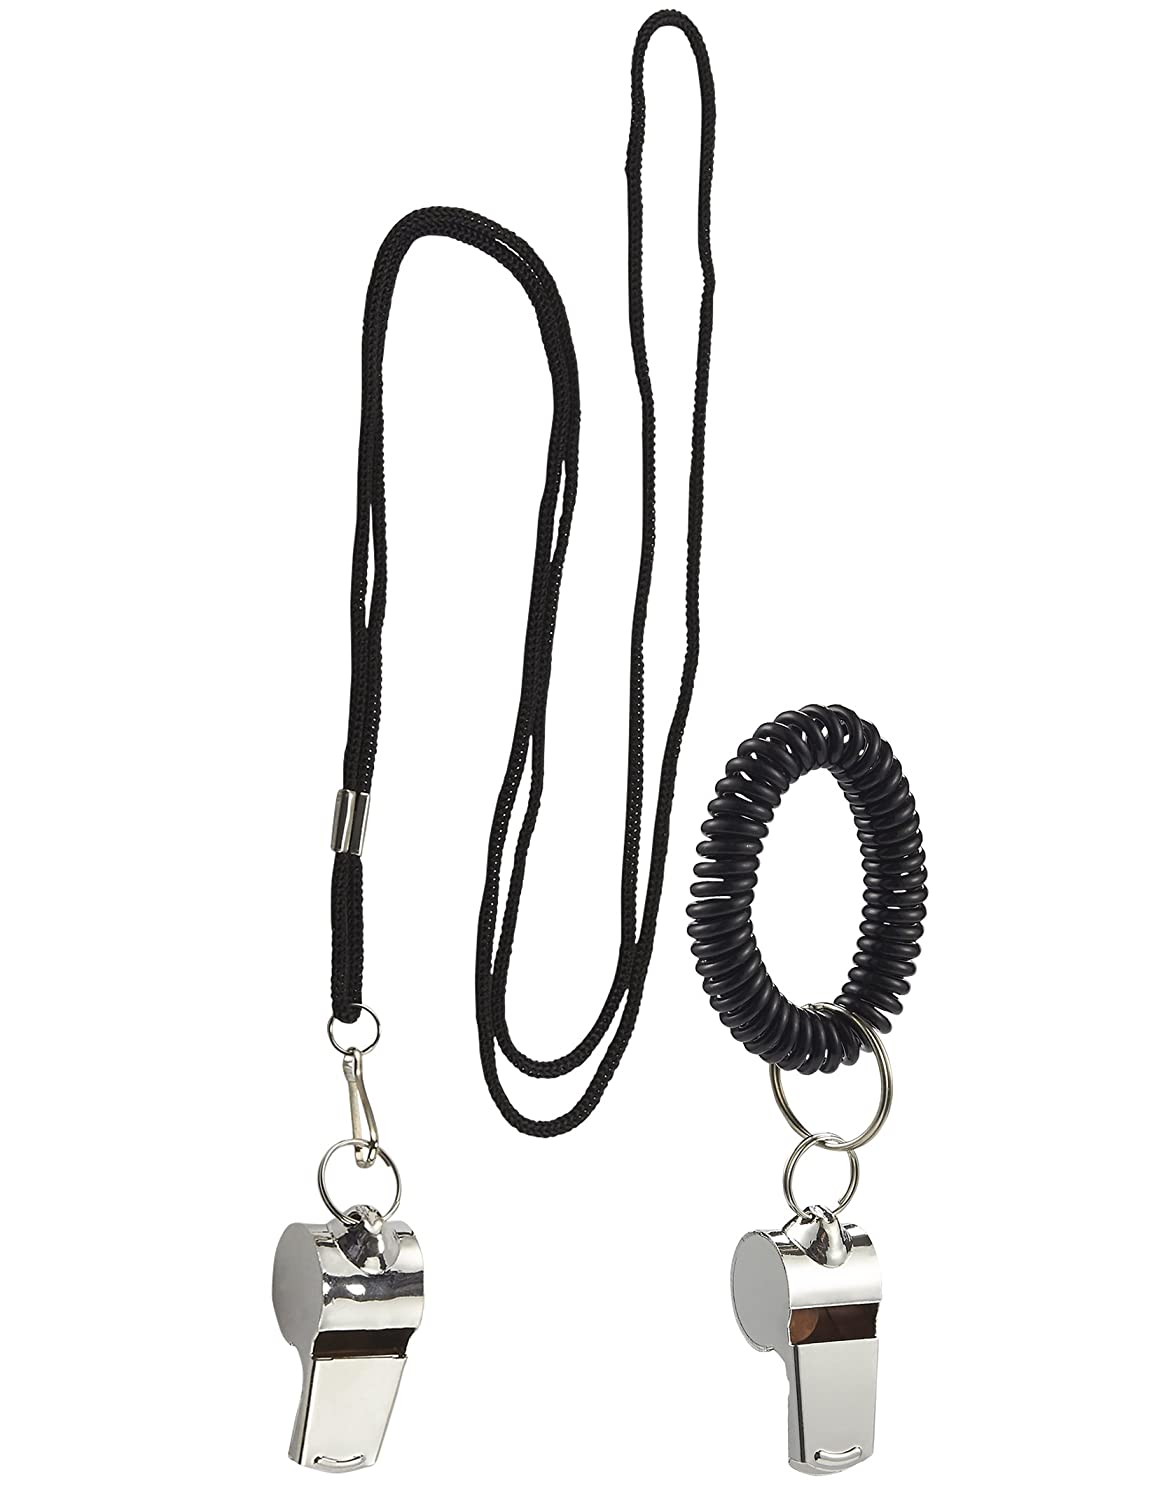 Juvale Coach Whistle - 2-Pack Stainless Steel Emergency Whistle Lanyard Spiral Bracelet, Referee Whistle School Sports, Training, 4.8 x 2 x 0.2 Inches